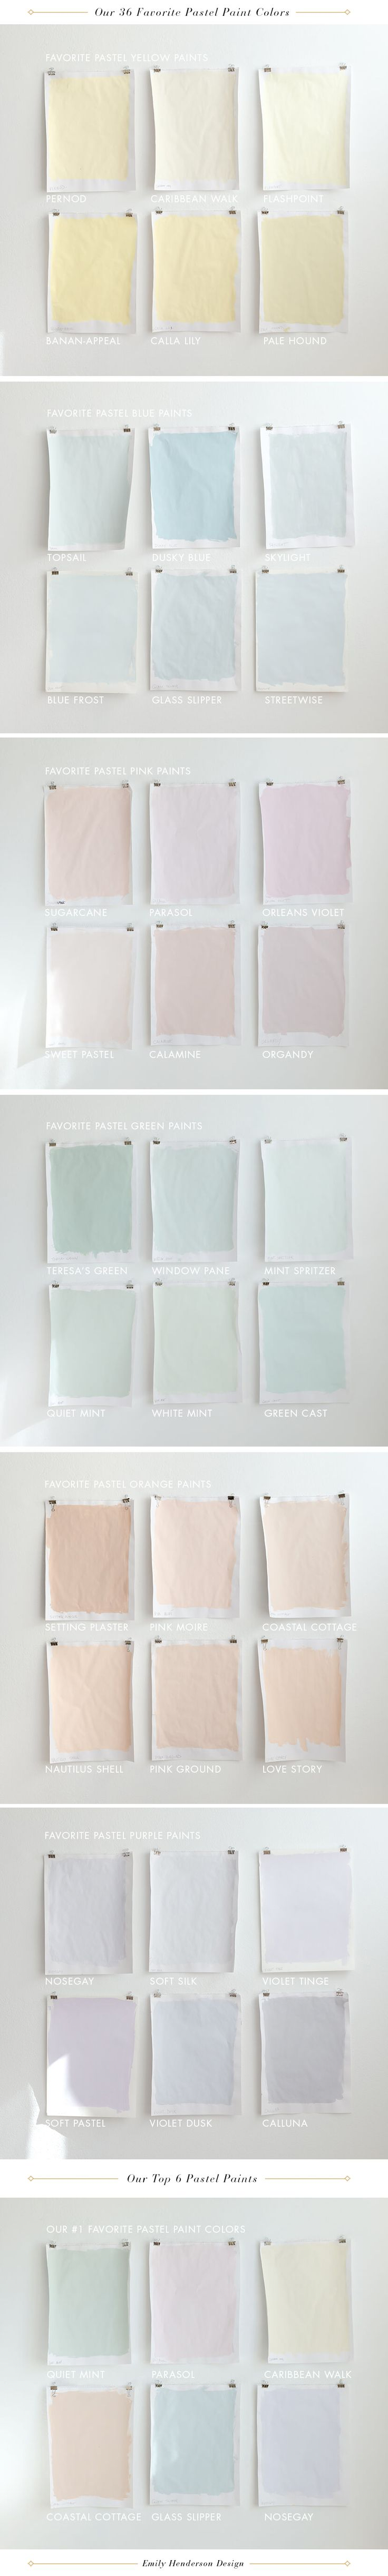 Emily Henderson's 36 all time favorite pastel paints for the home.